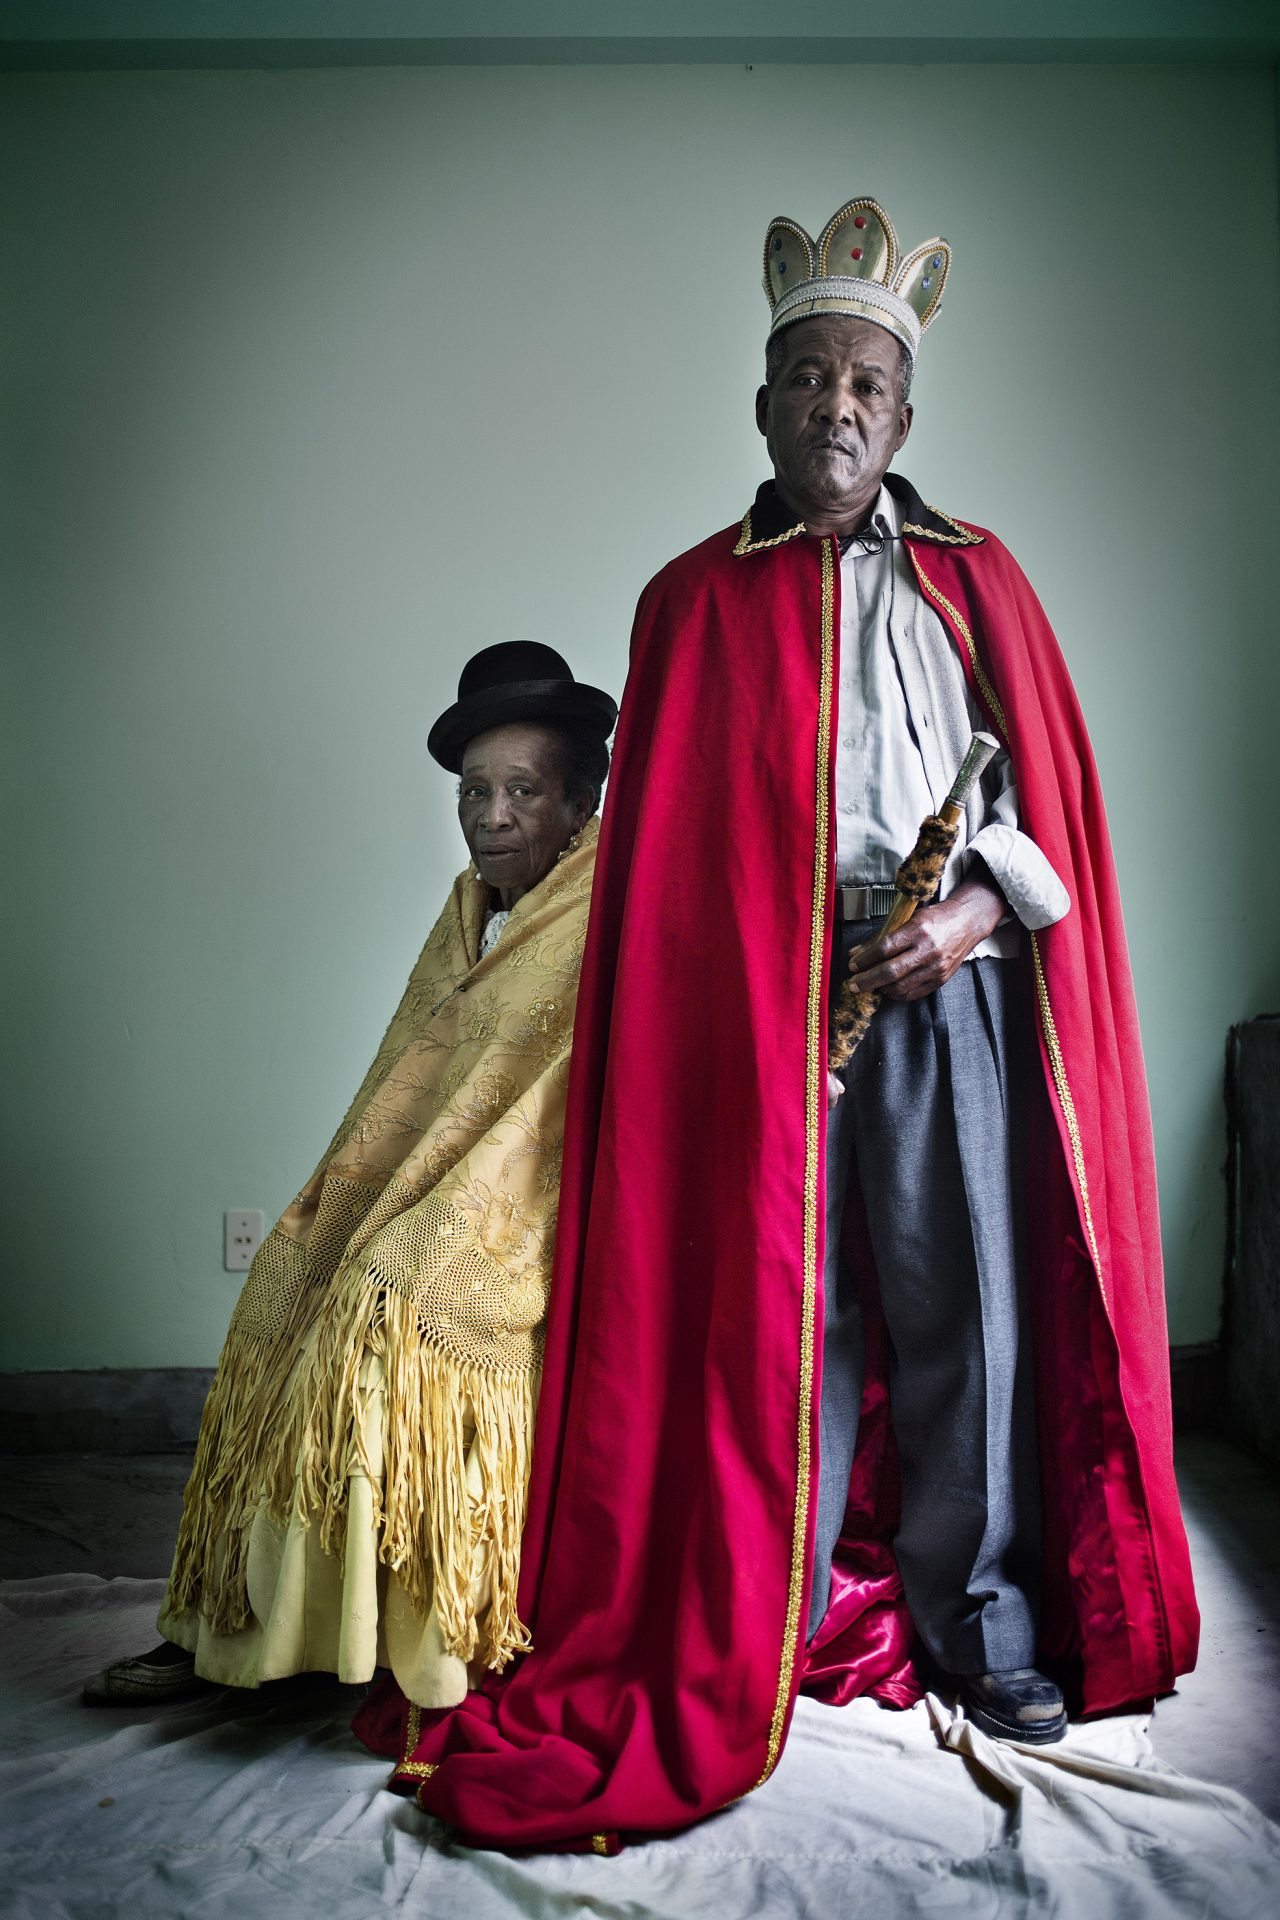 Official portrait of Don Julio Pinedo and his wife Angelca Larrea, afrobolivian king and Queen wearing the Royal clothes and emblems. Retrato reyes: Mururata (Nord Yungas. Provincia de La Paz. Bolivia). 2012. Retrato del Rey Afroboliviano Don Julio Pinedo junto a su esposa la Reina Angélica Larrea vistiendo y portando los atuendos reales.